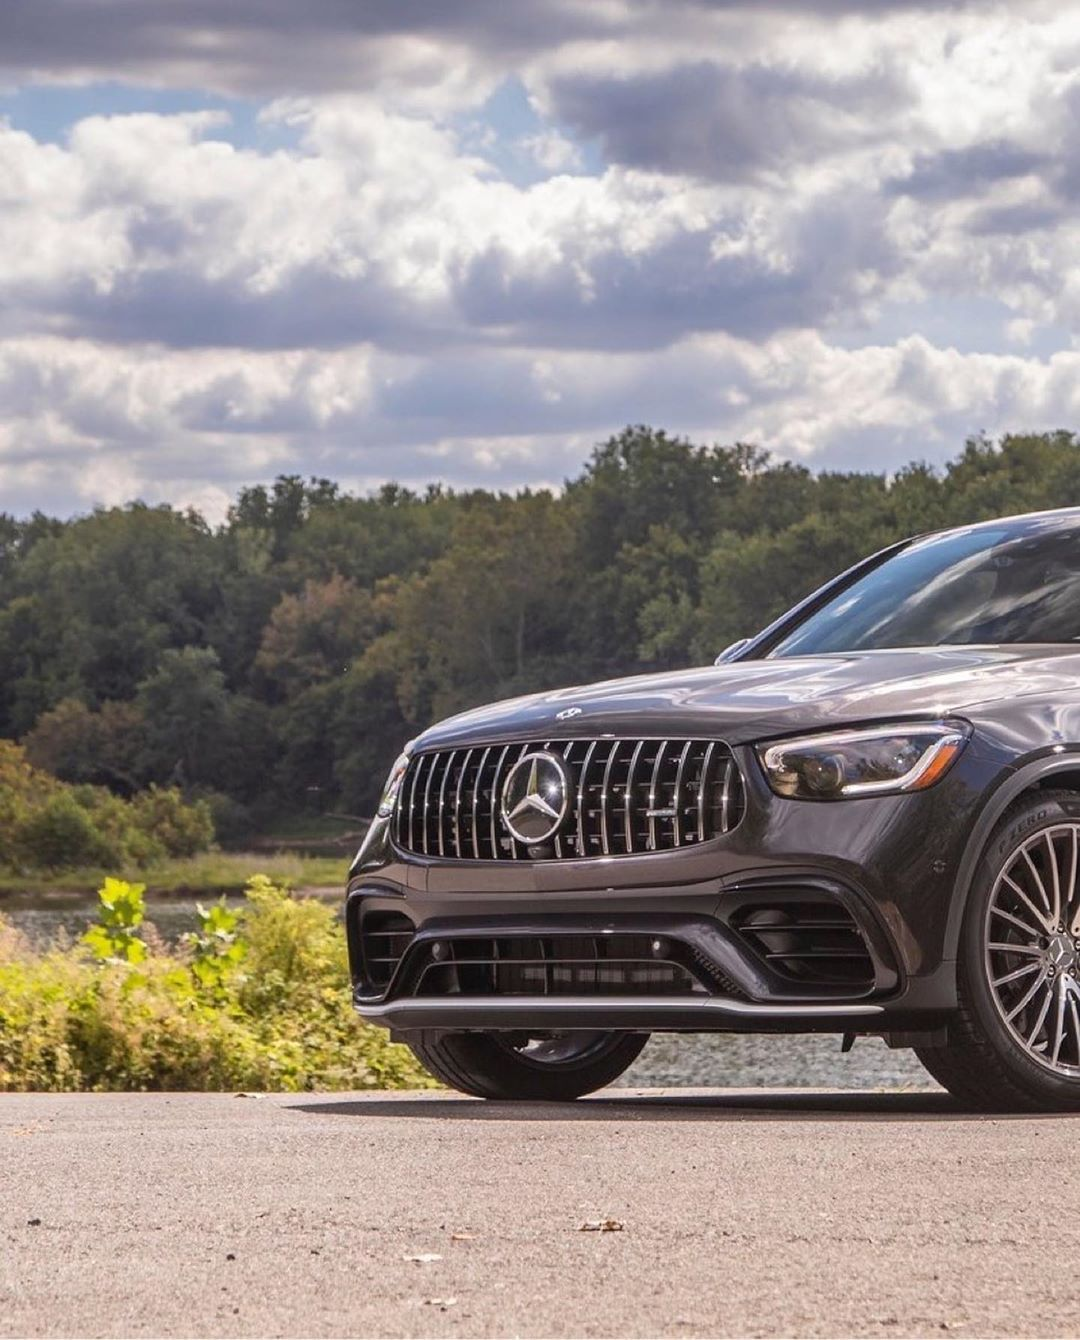 2020 Mercedes Benz Glc63 Amg Coupe Super Cars Expensive Cars